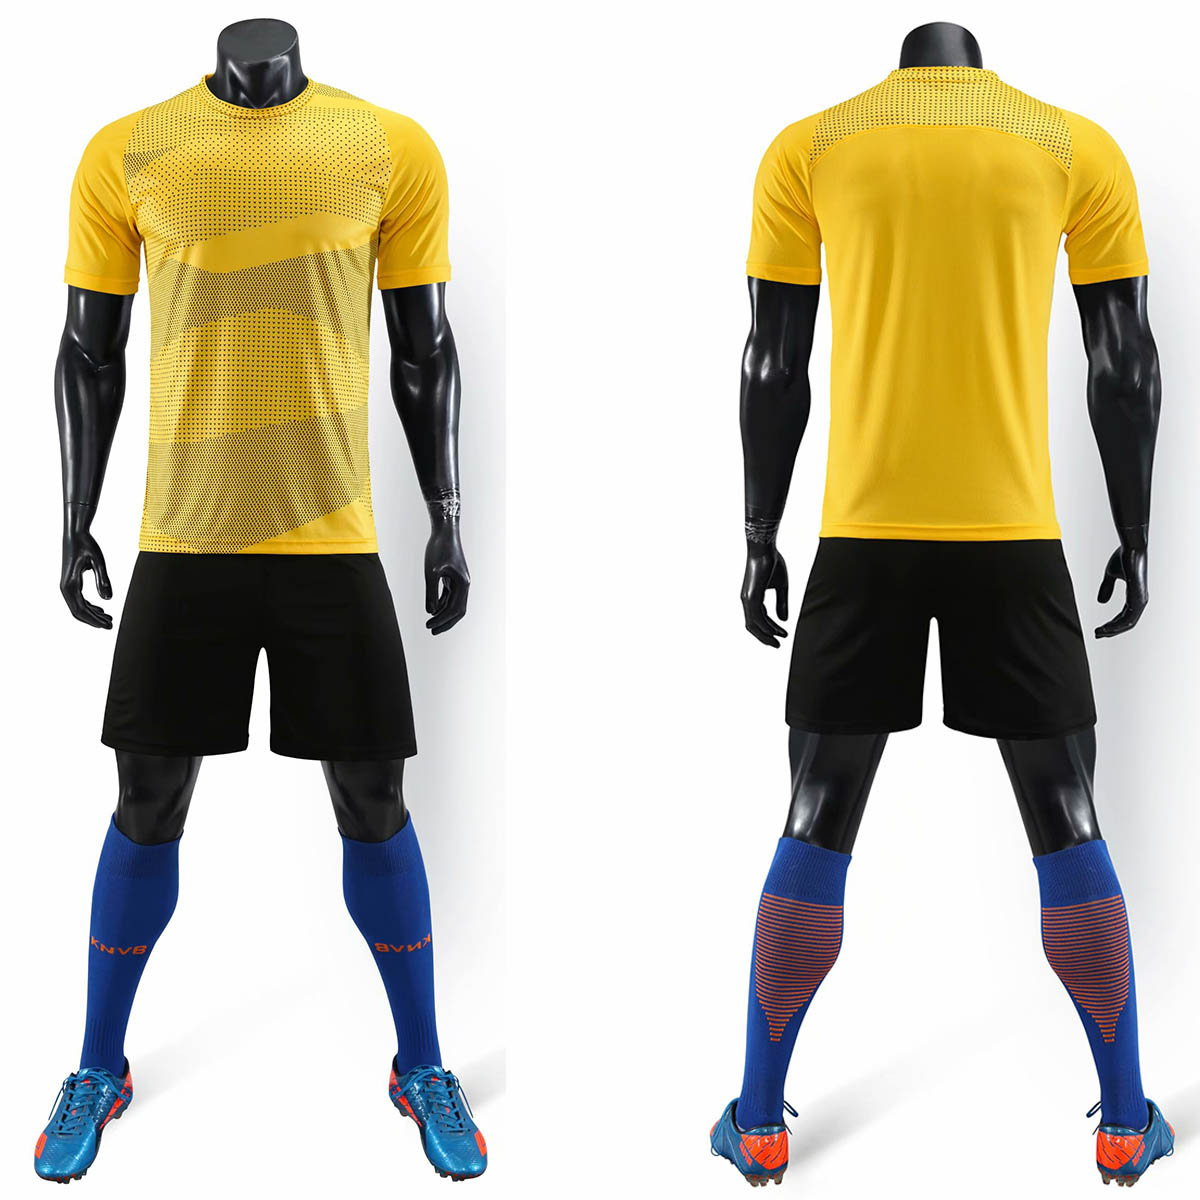 19 20 new men 39 s and women 39 s team football jersey suit team football jersey suit can be customized name logo and number in Soccer Sets from Sports amp Entertainment